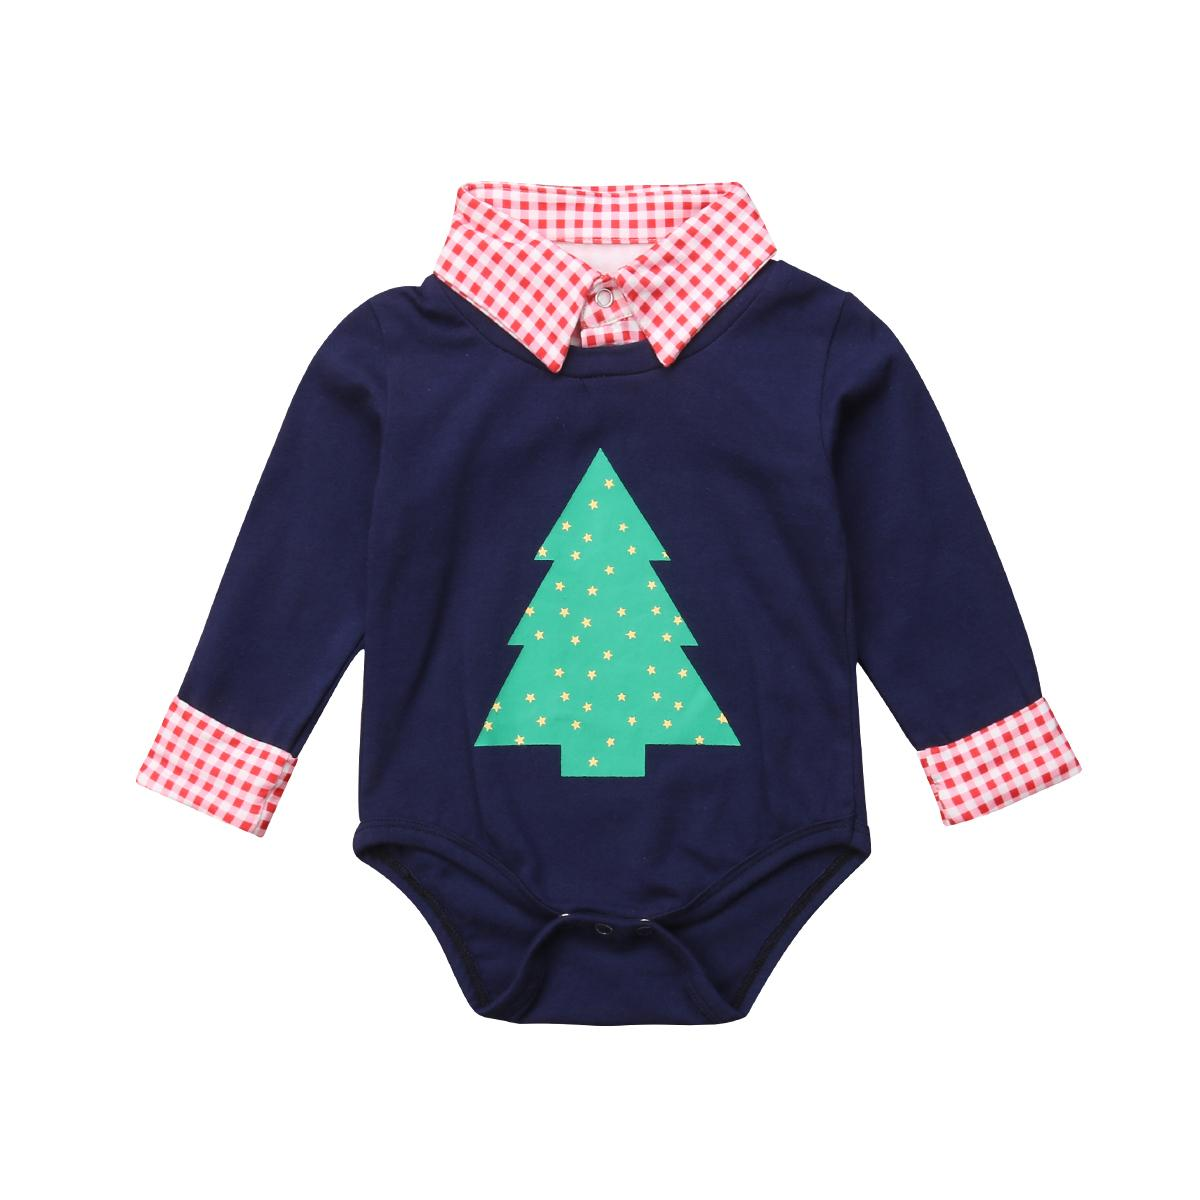 ee1831a30334 2019 Navy Blue Newborn Baby Boy Fake Two Pieces Long Sleeve Romper ...